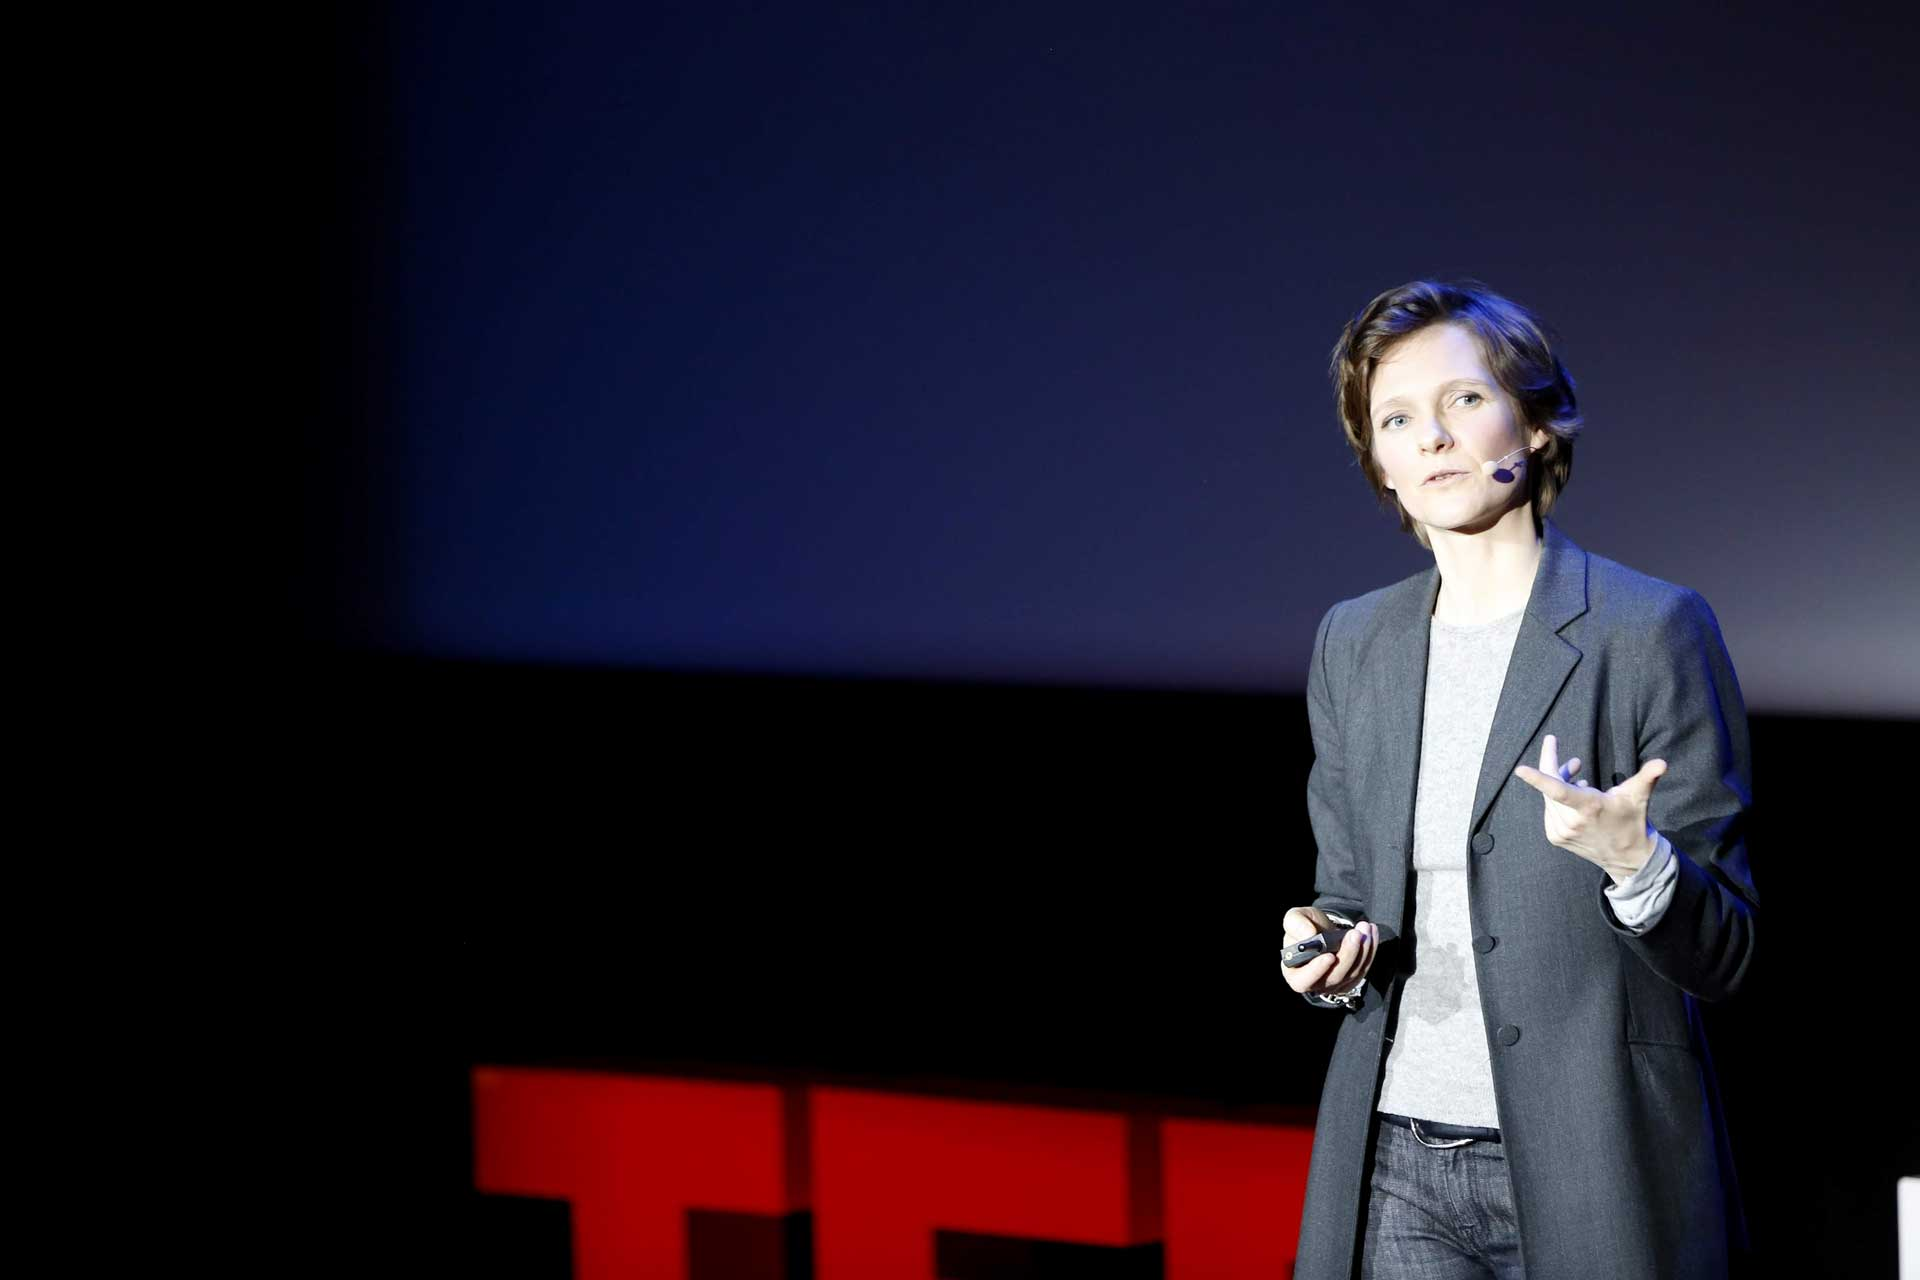 conference-TEDxParis-2013-7.jpg